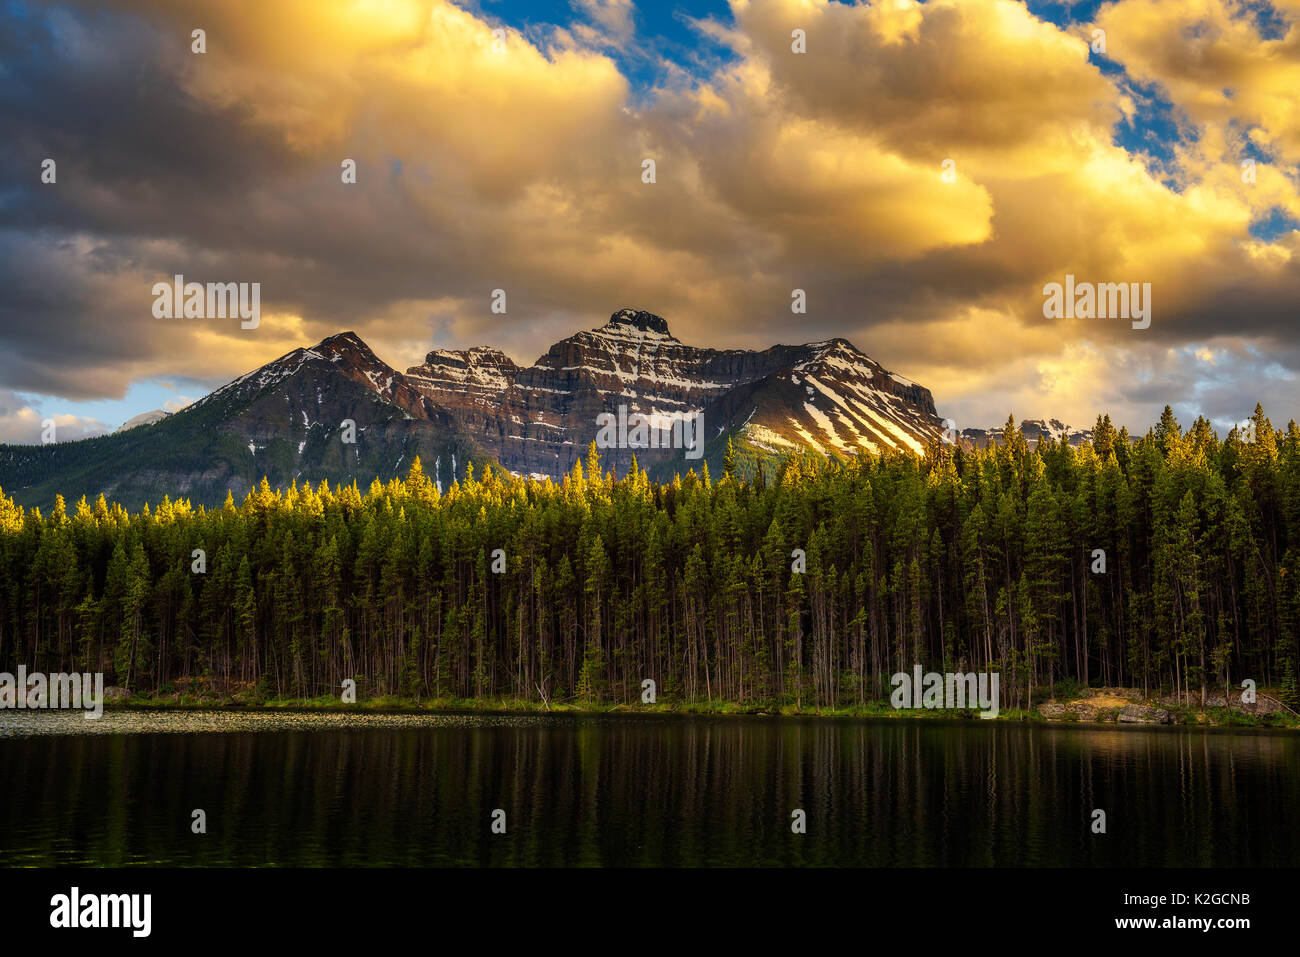 Scenic sunset over deep forest along the Herbert Lake in Banff National Park, with snow-covered peaks of canadian Rocky Mountains in the background. - Stock Image